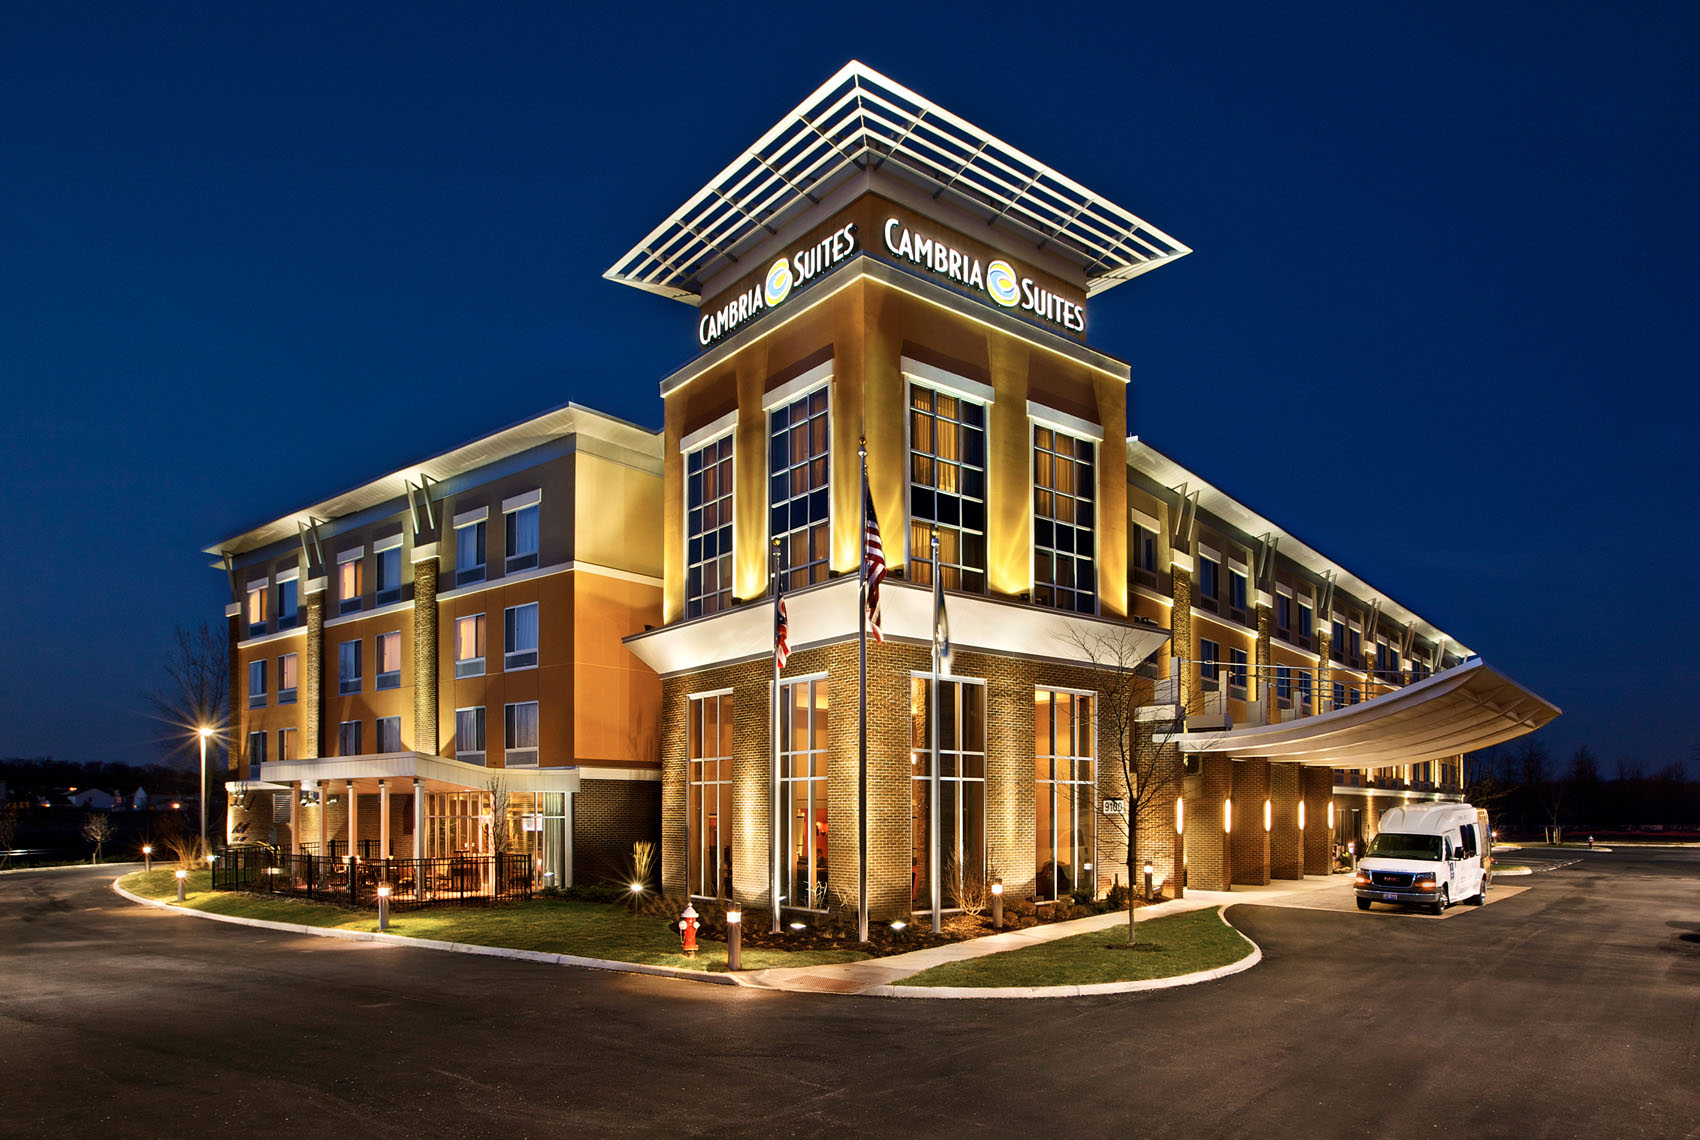 Exterior photograph of a luxury hotel resort by  Colorado based architectural hotel and resort photographer Richard Steinberger